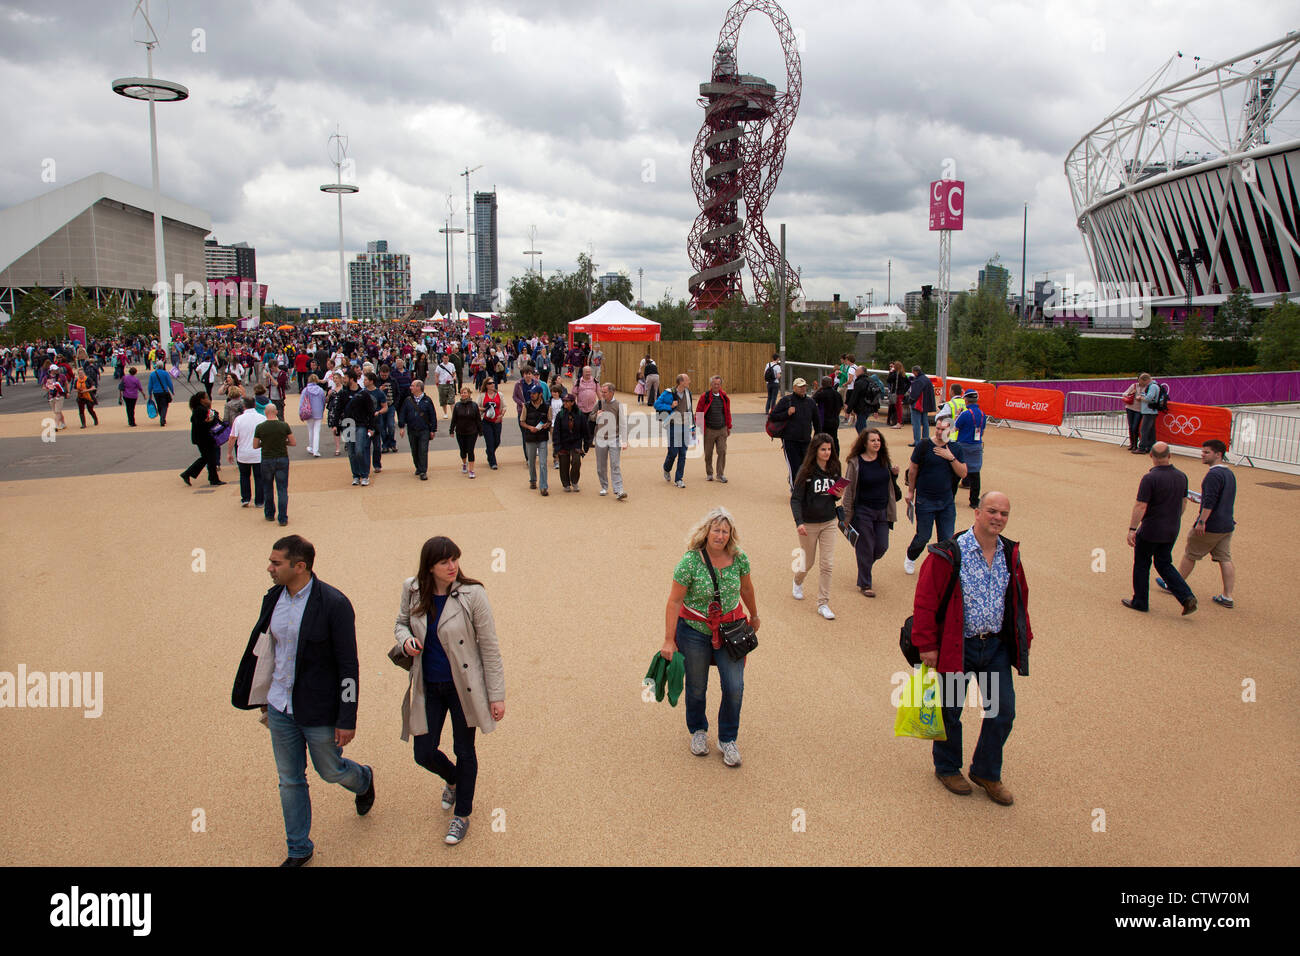 London 2012 Olympic Park in Stratford, East London. Crowds of fans walking around the site. Stock Photo